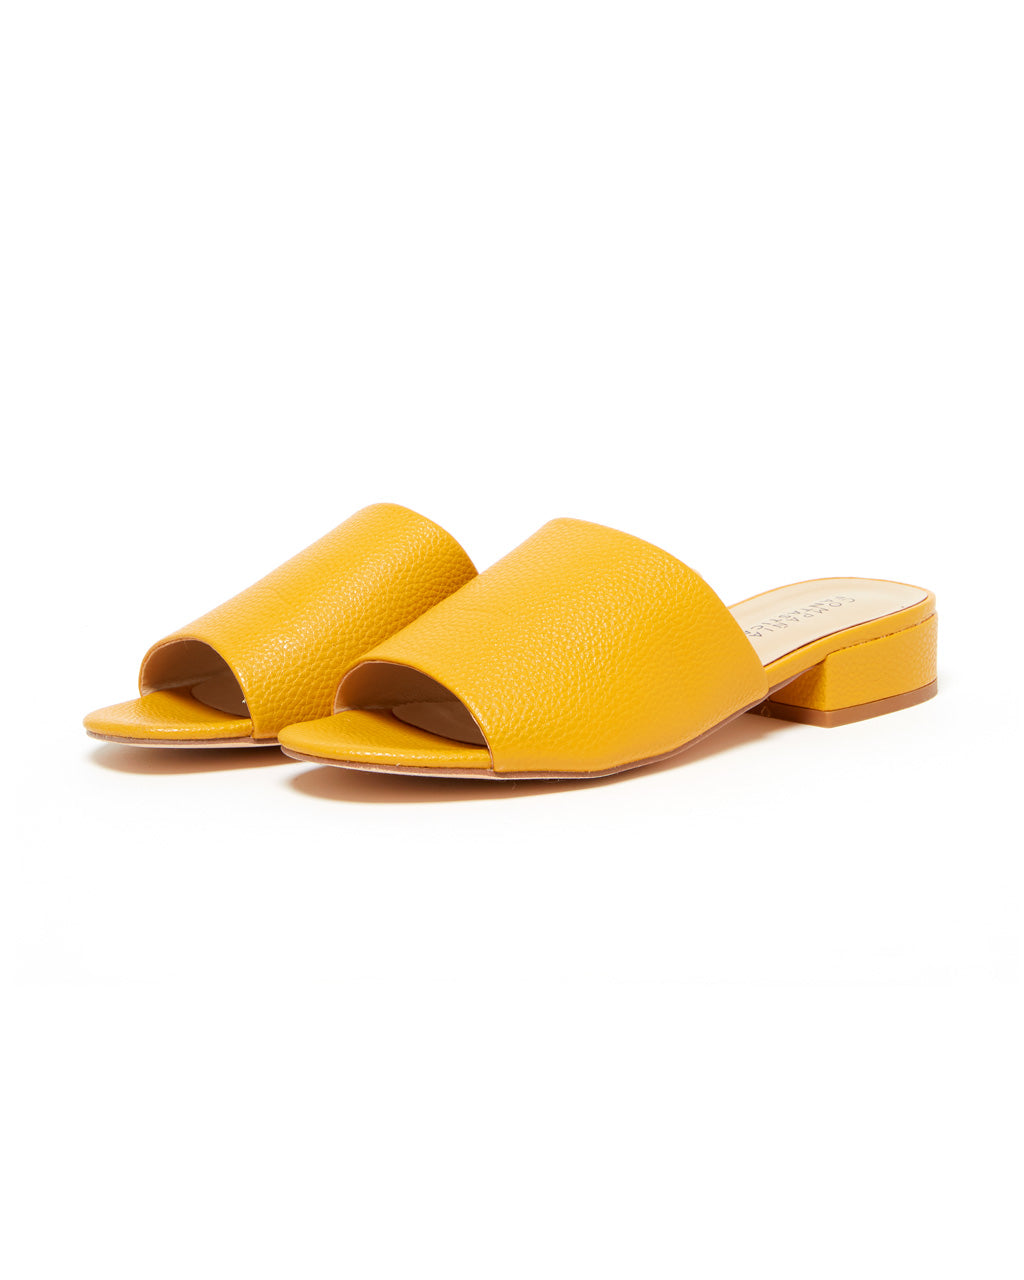 faux leather mustard yellow mules with a low heel